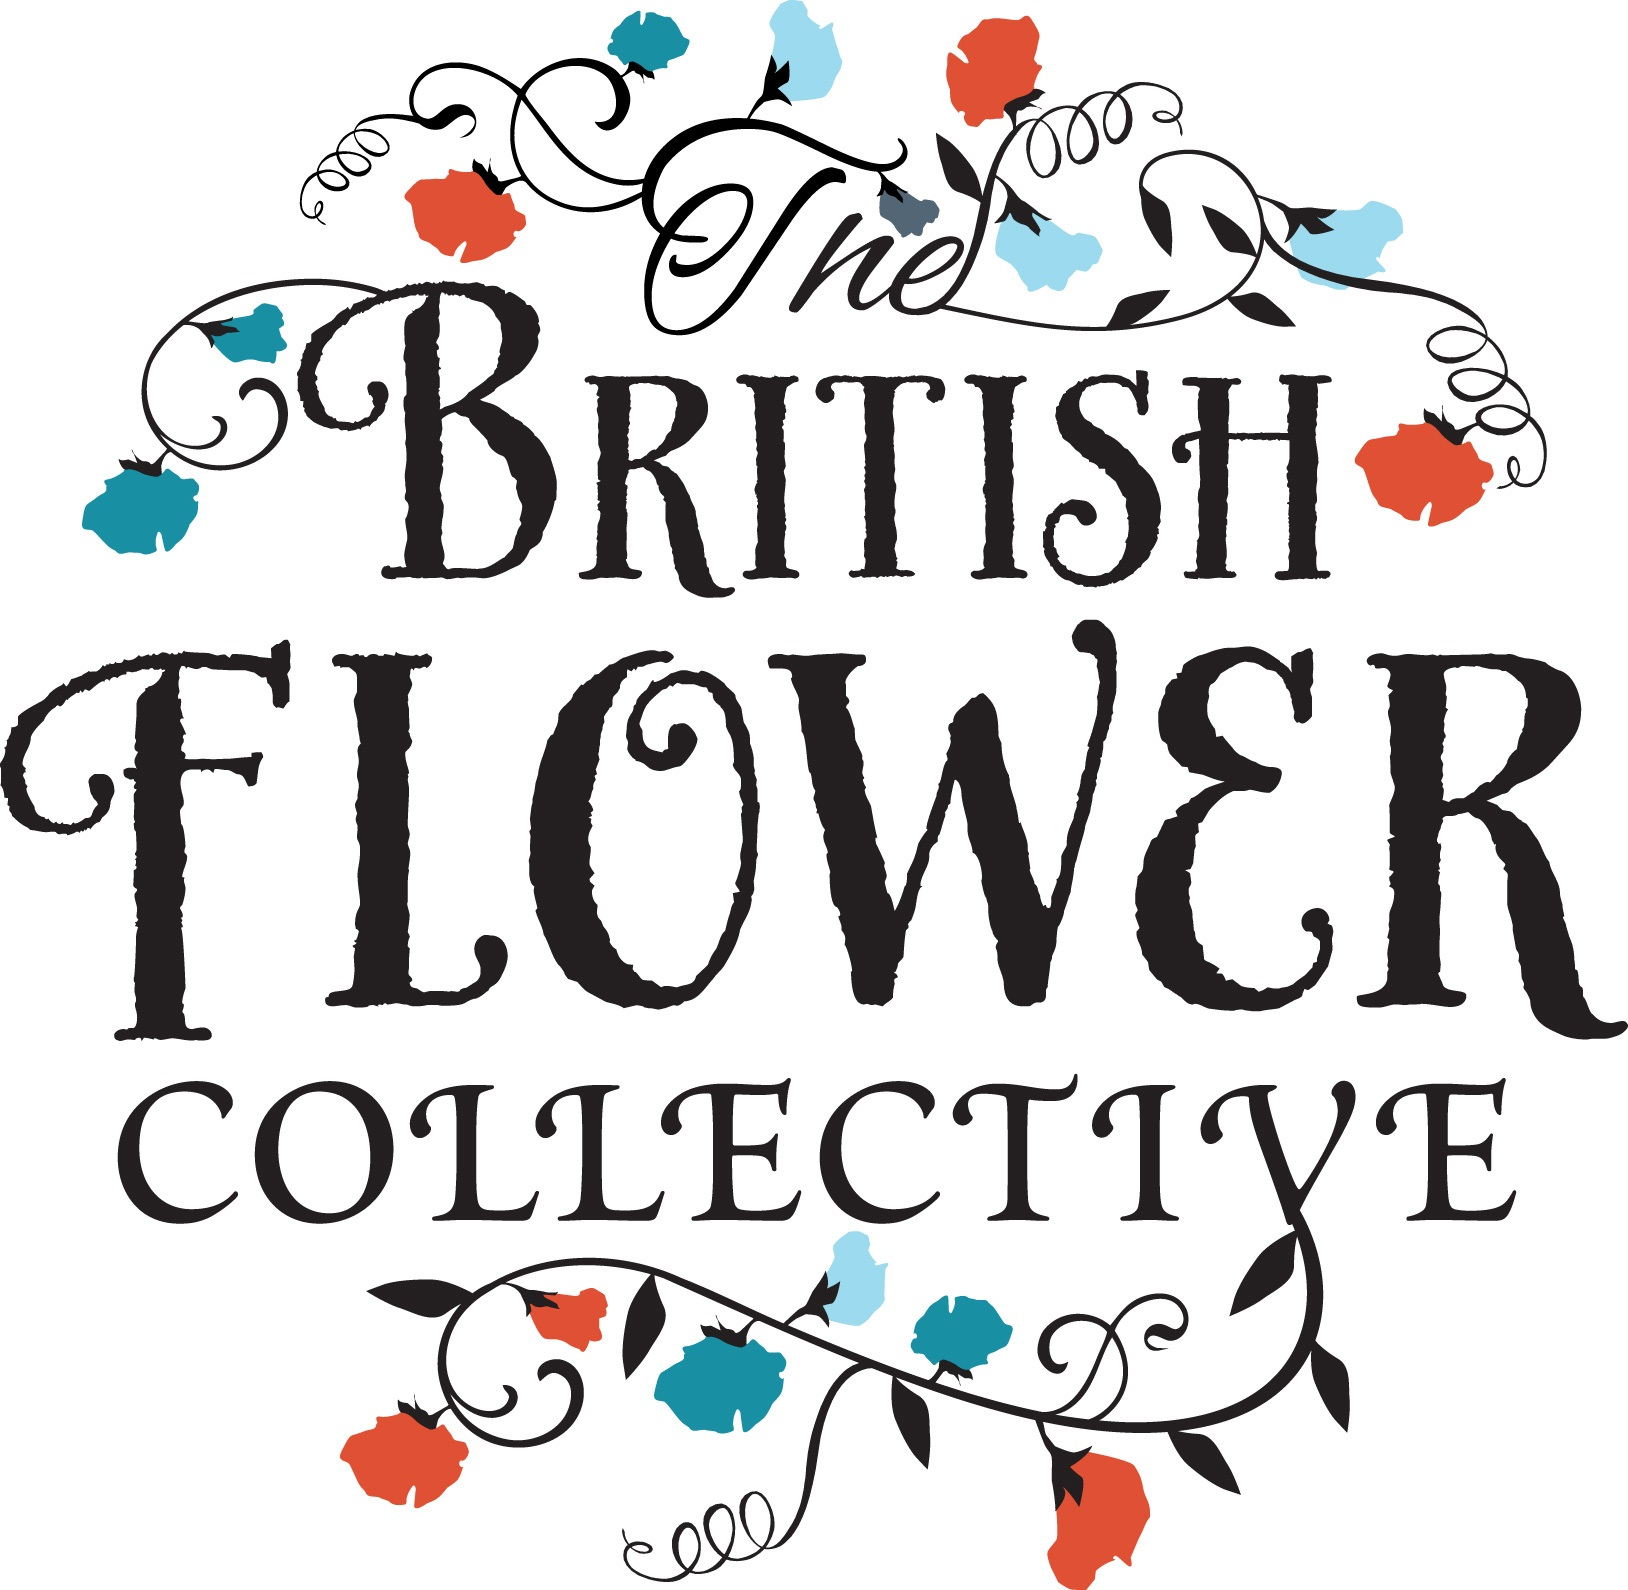 British flower growers and florists can be found at The British Flower Collective